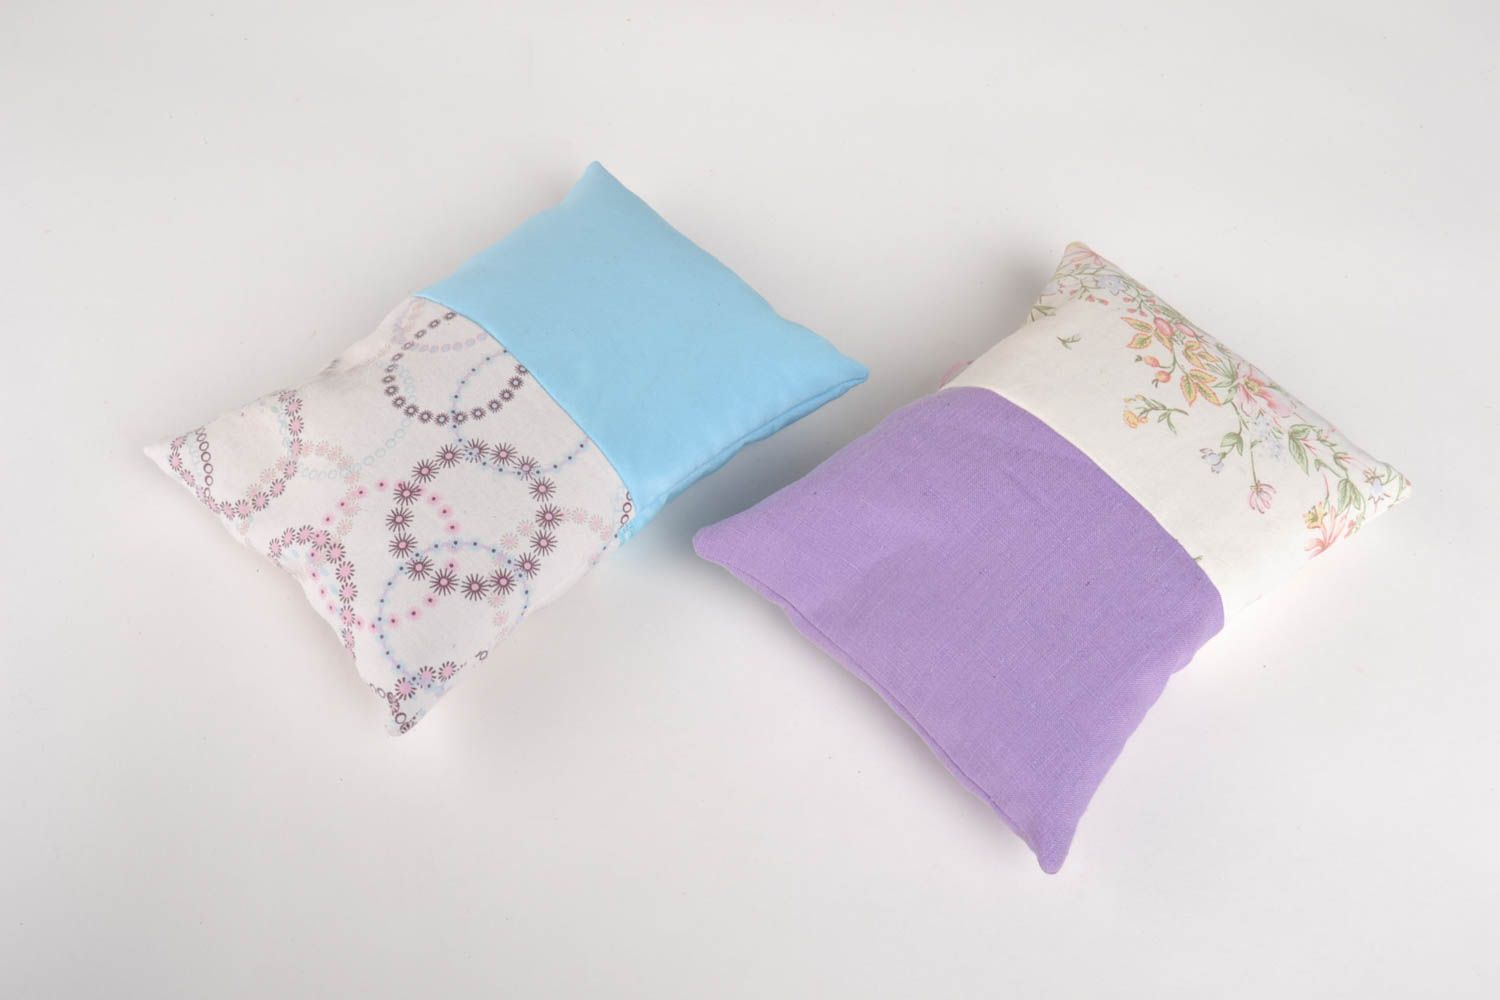 Homemade home decor 2 sachet pillows scented sachets homemade gifts for friends photo 3